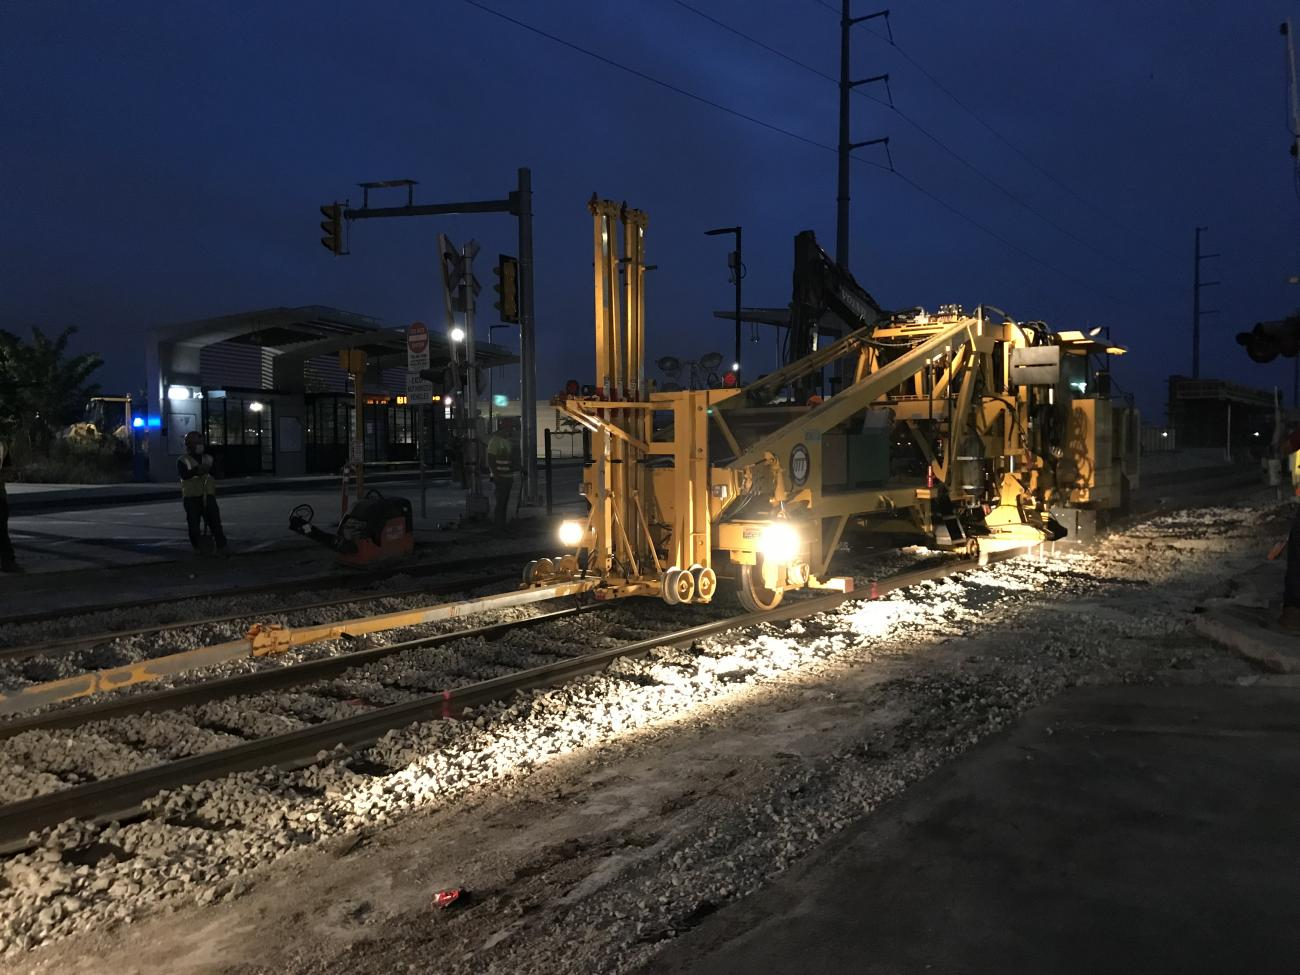 Machinery is used to tamp the new tracks and align them with the existing rail